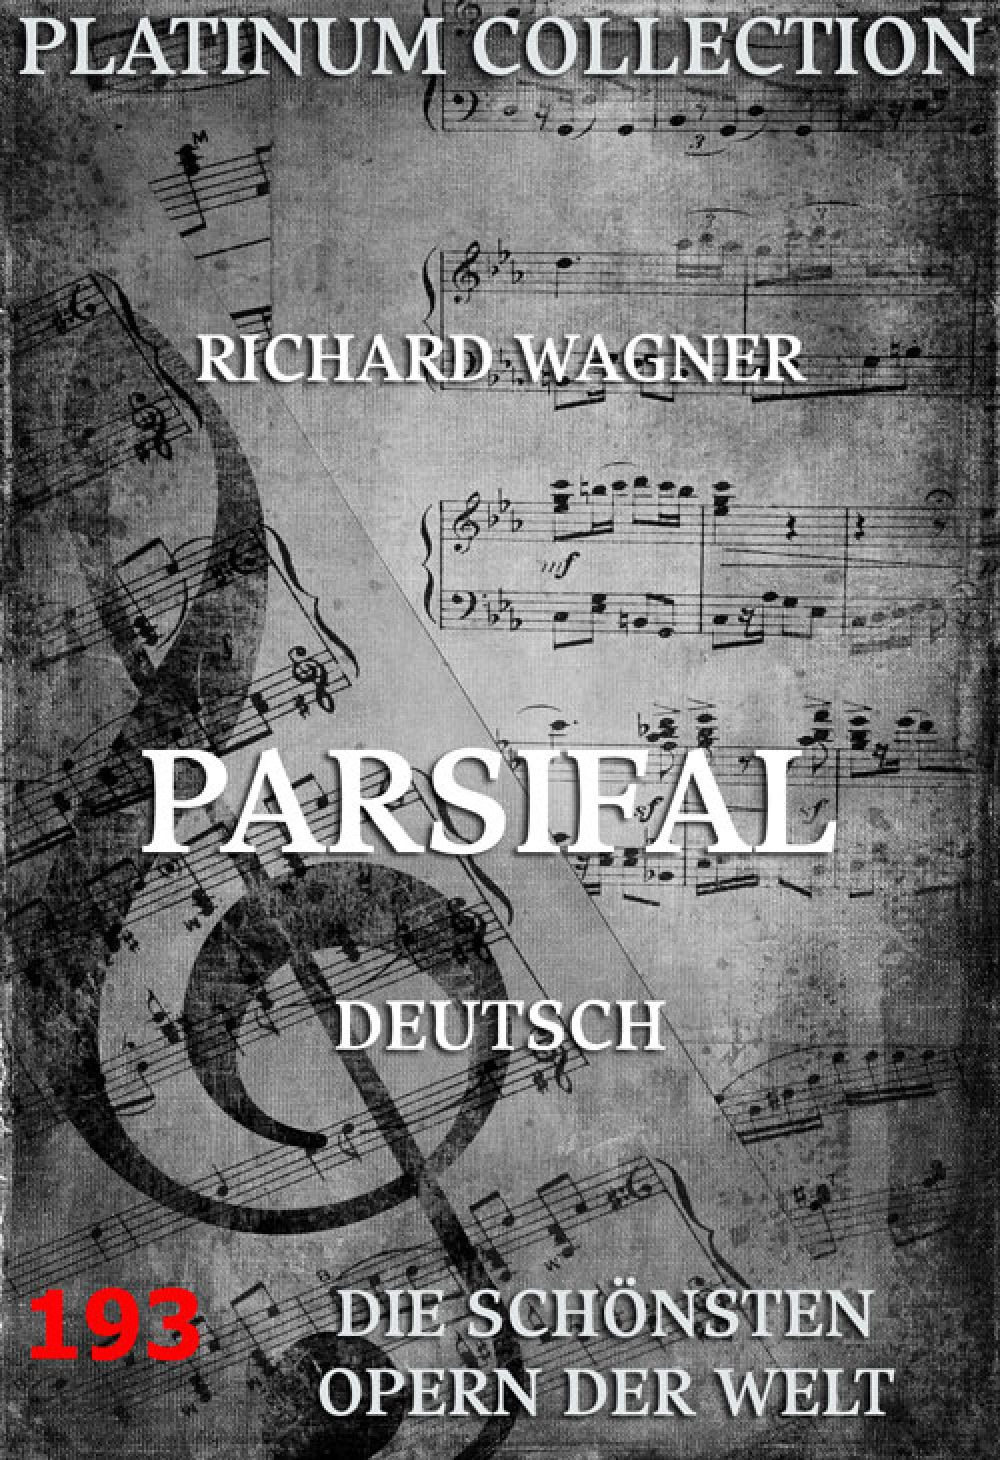 Richard Wagner Parsifal richard wagner richard mansfield xml all in one desk reference for dummies